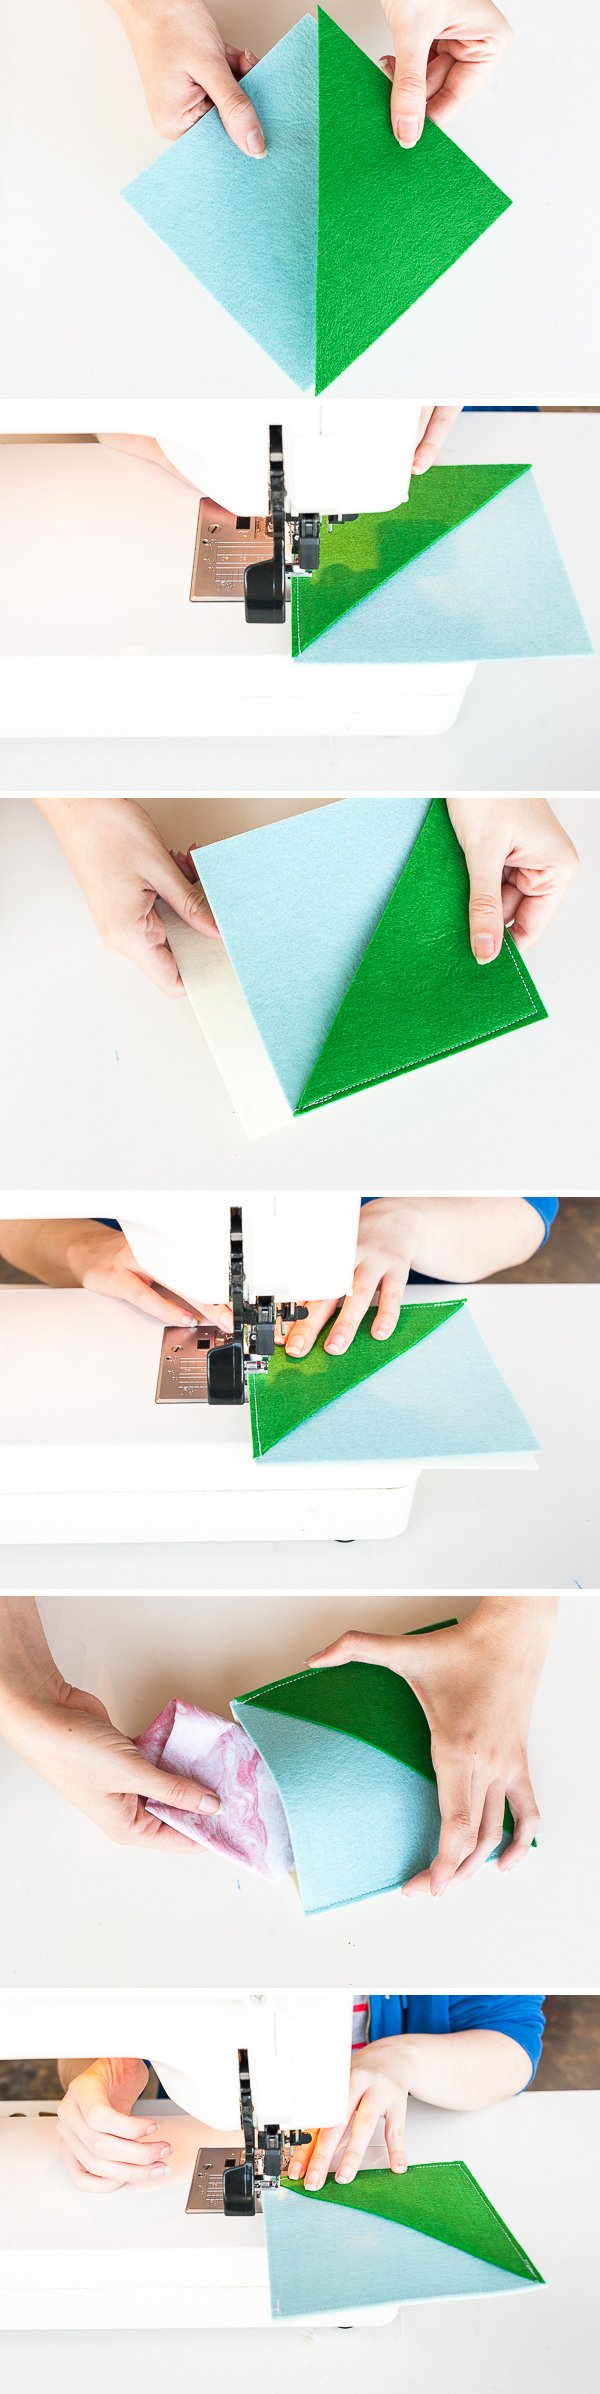 How to Make Color Blocked Sewn Felt Pouches for Presents